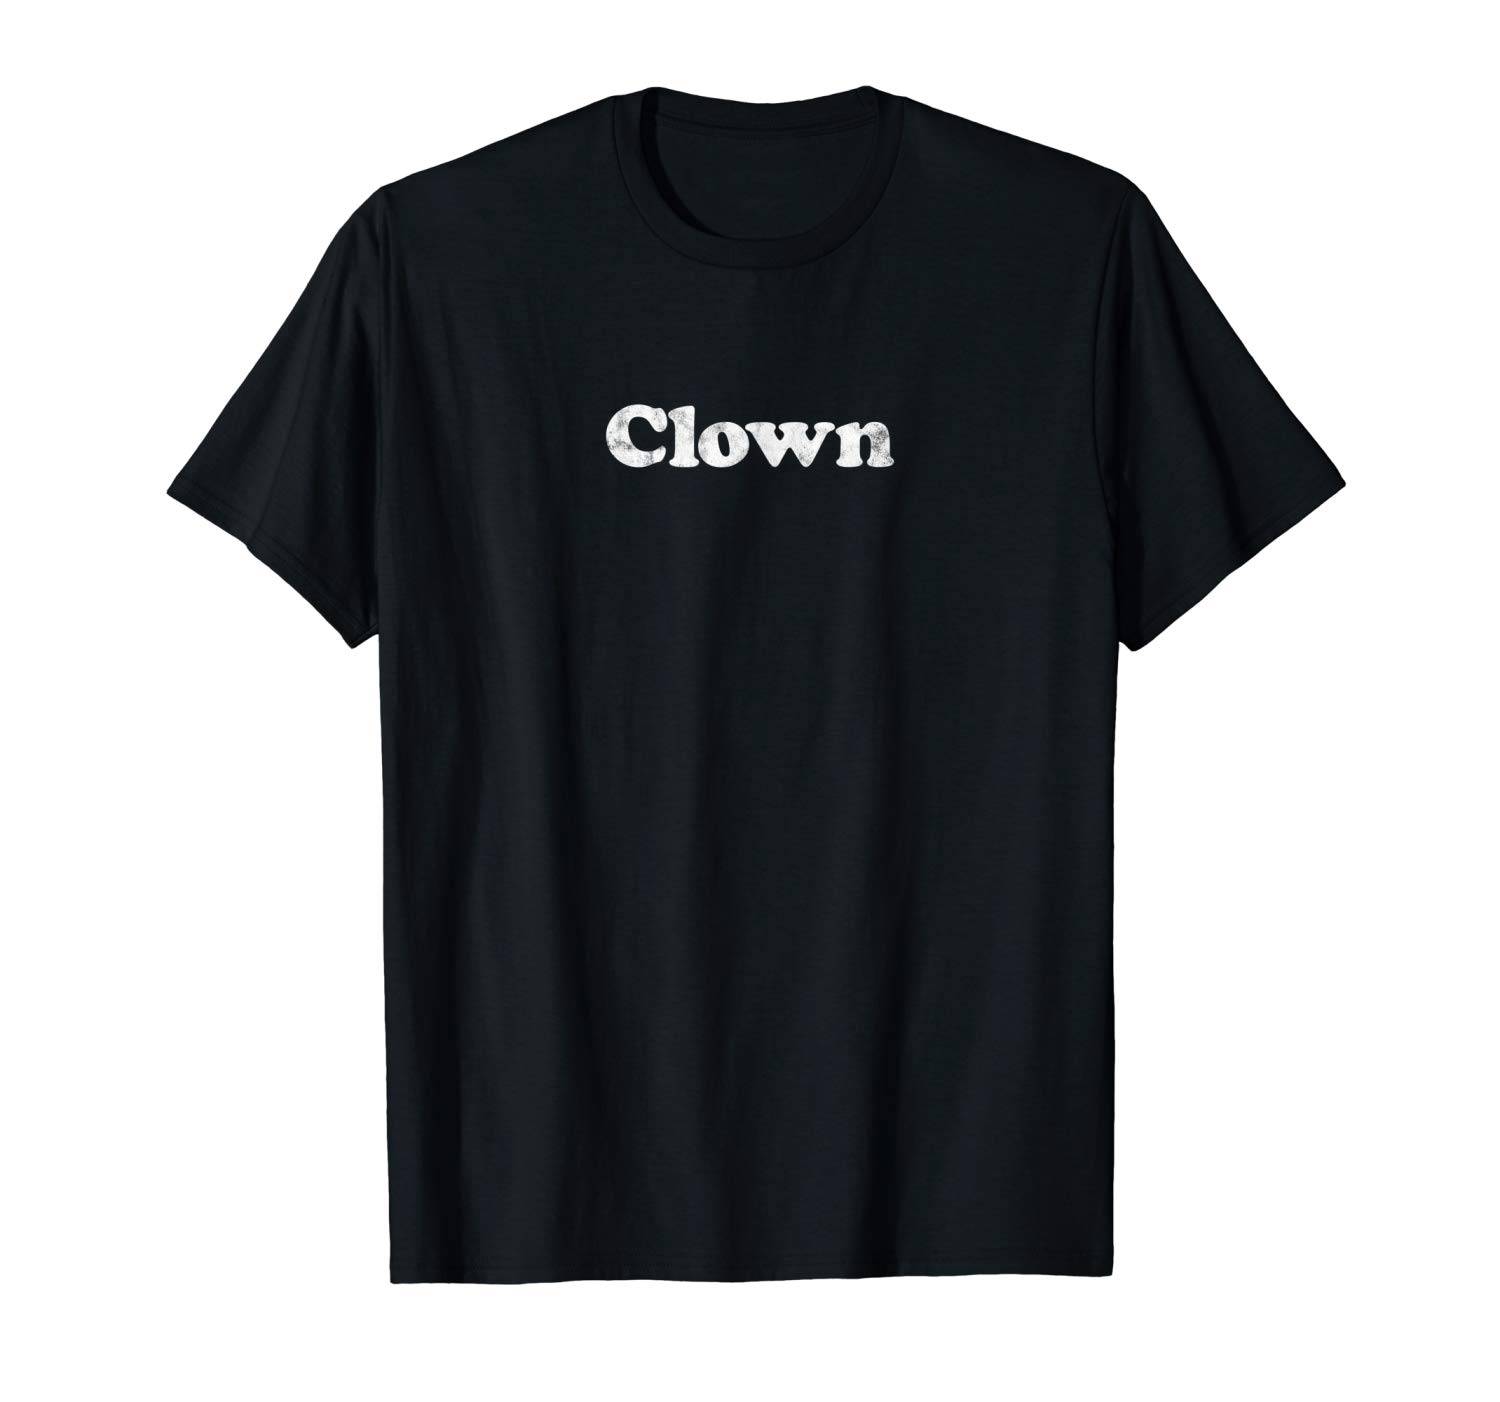 T-Shirt: Lustiges Clown Karneval Kostüm Shirt Party em Sunnesching T-Shirt